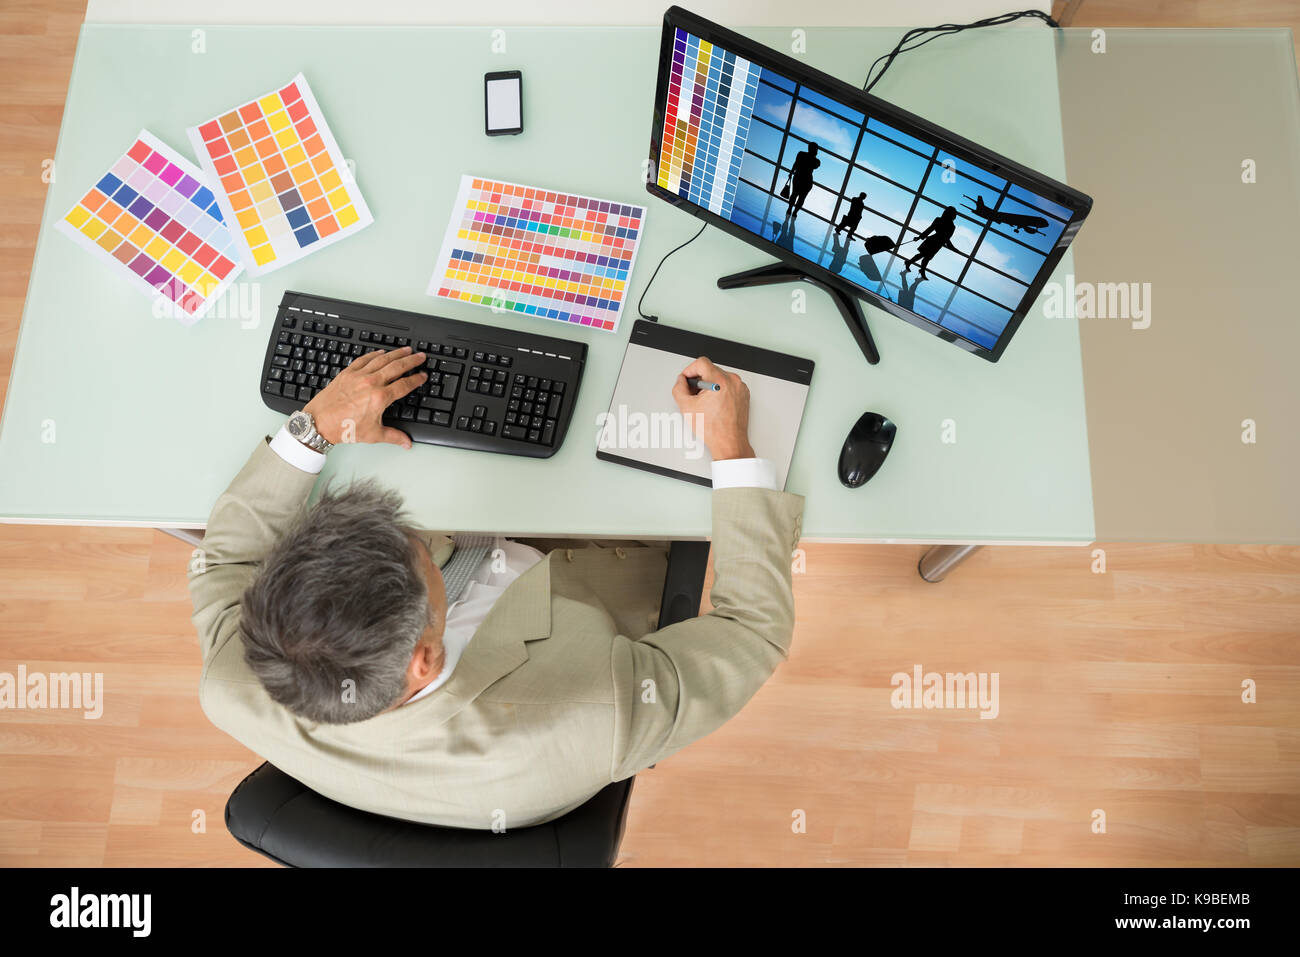 High Angle View Of Businessman Using Graphic Tablet In Office. Photographer owns copyright for images on screen - Stock Image